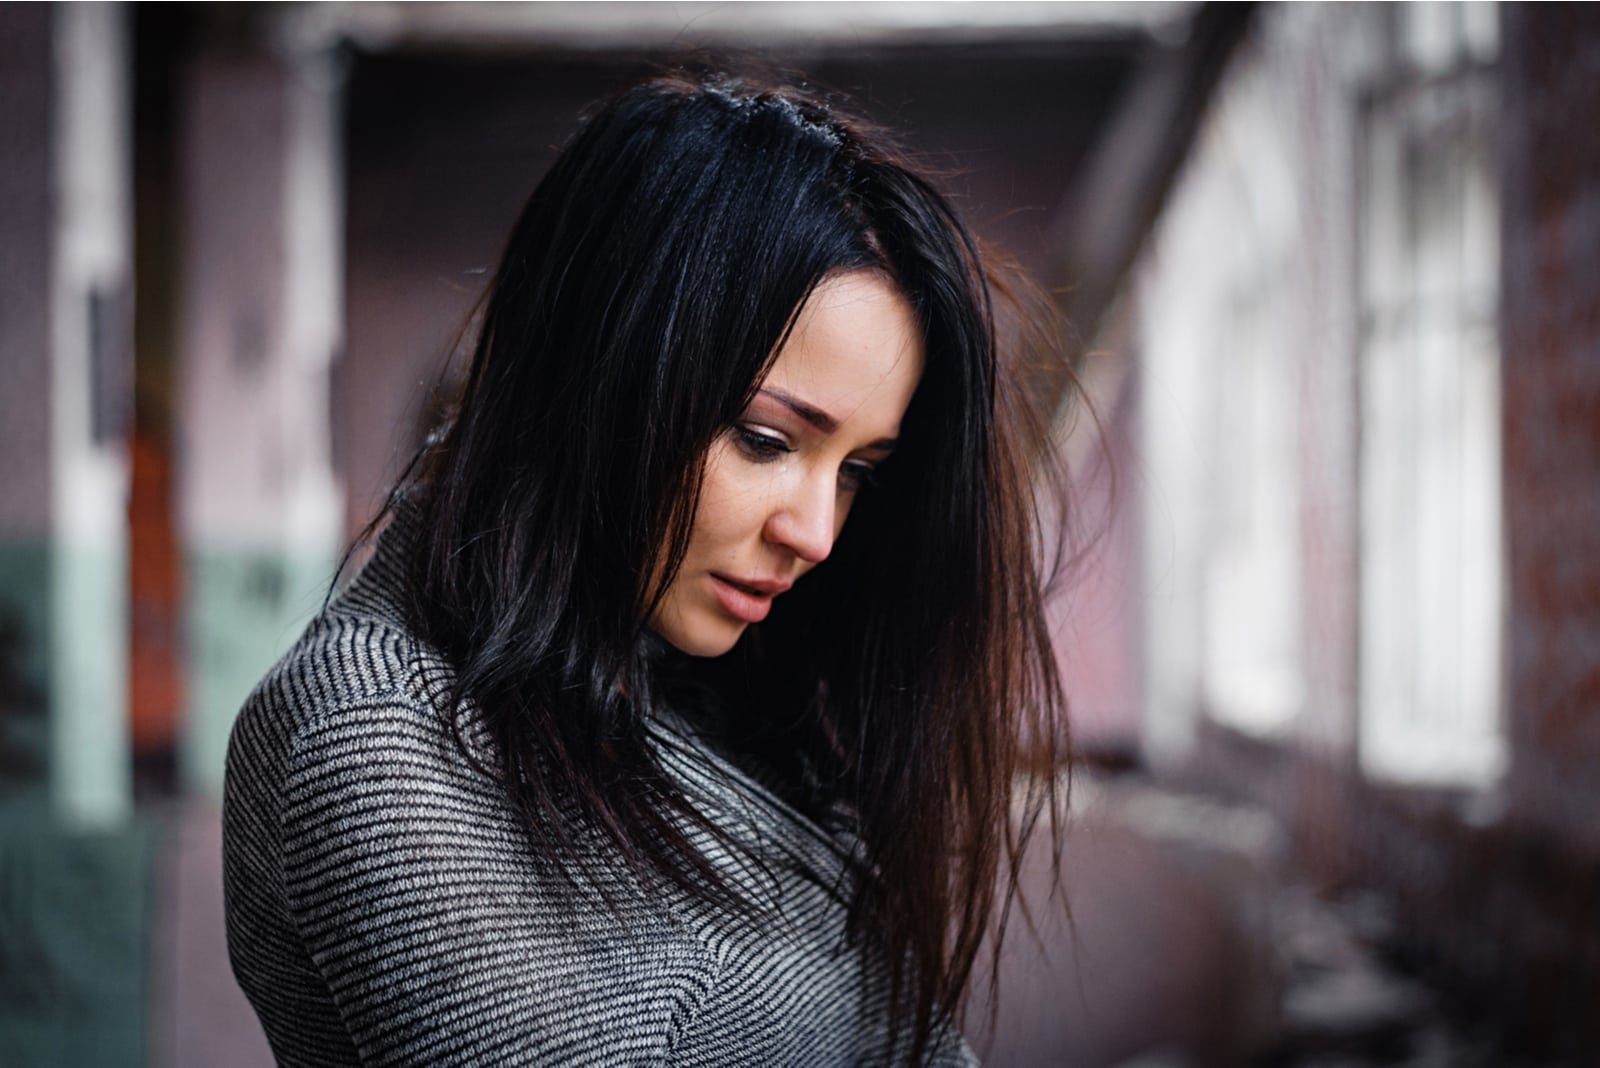 a woman with black hair with a downcast look